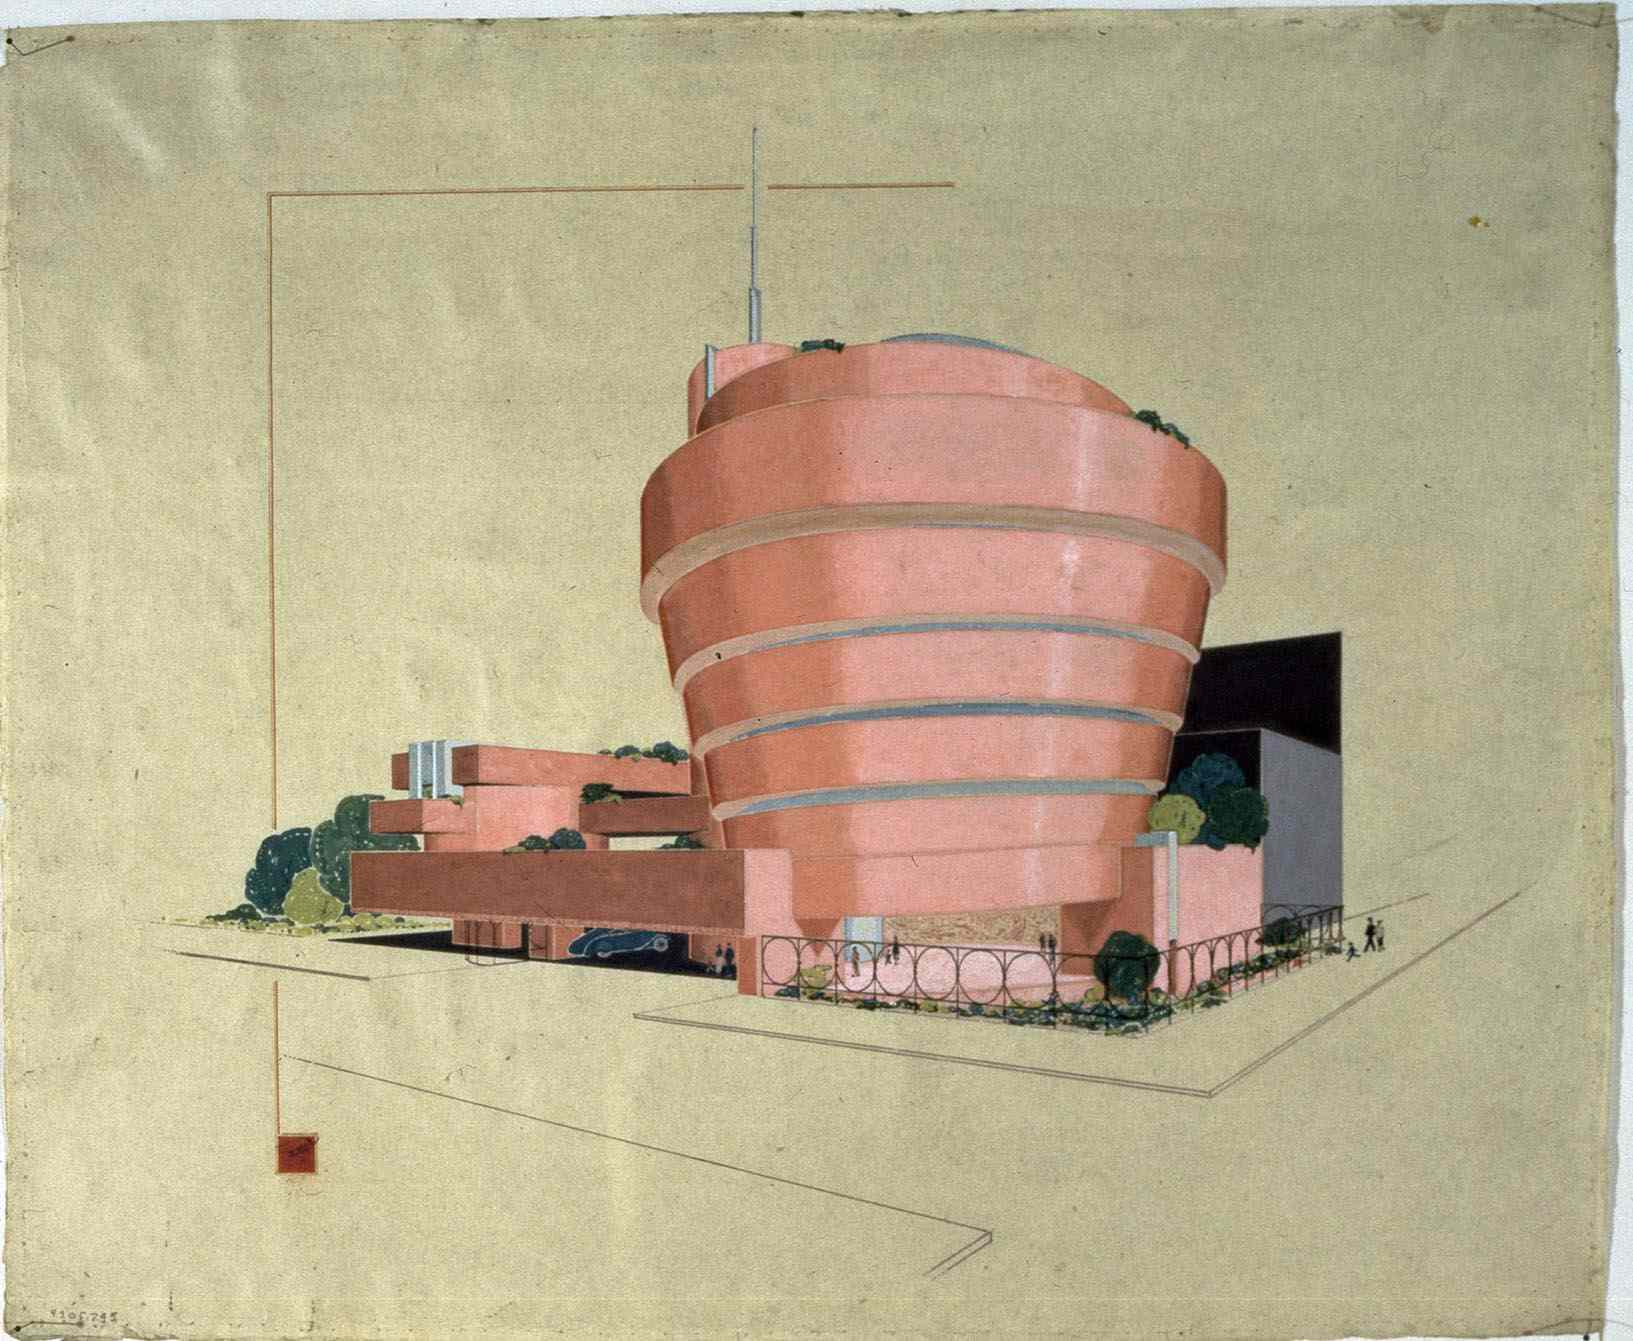 The Solomon R. Guggenheim Museum rendered in ink and pencil on tracing paper, by Frank Lloyd Wright